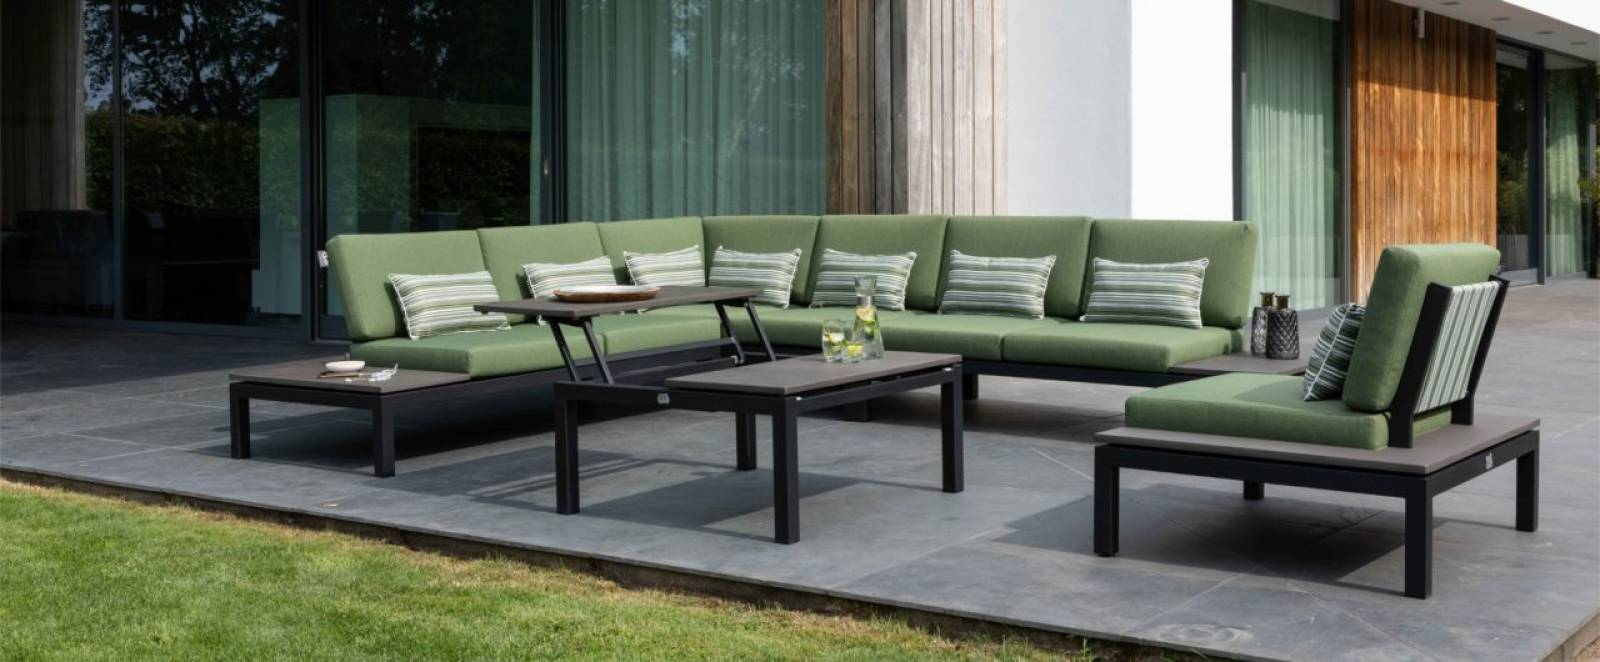 Salon de jardin Pebble Beach de Applebee - Insensé Mobilier